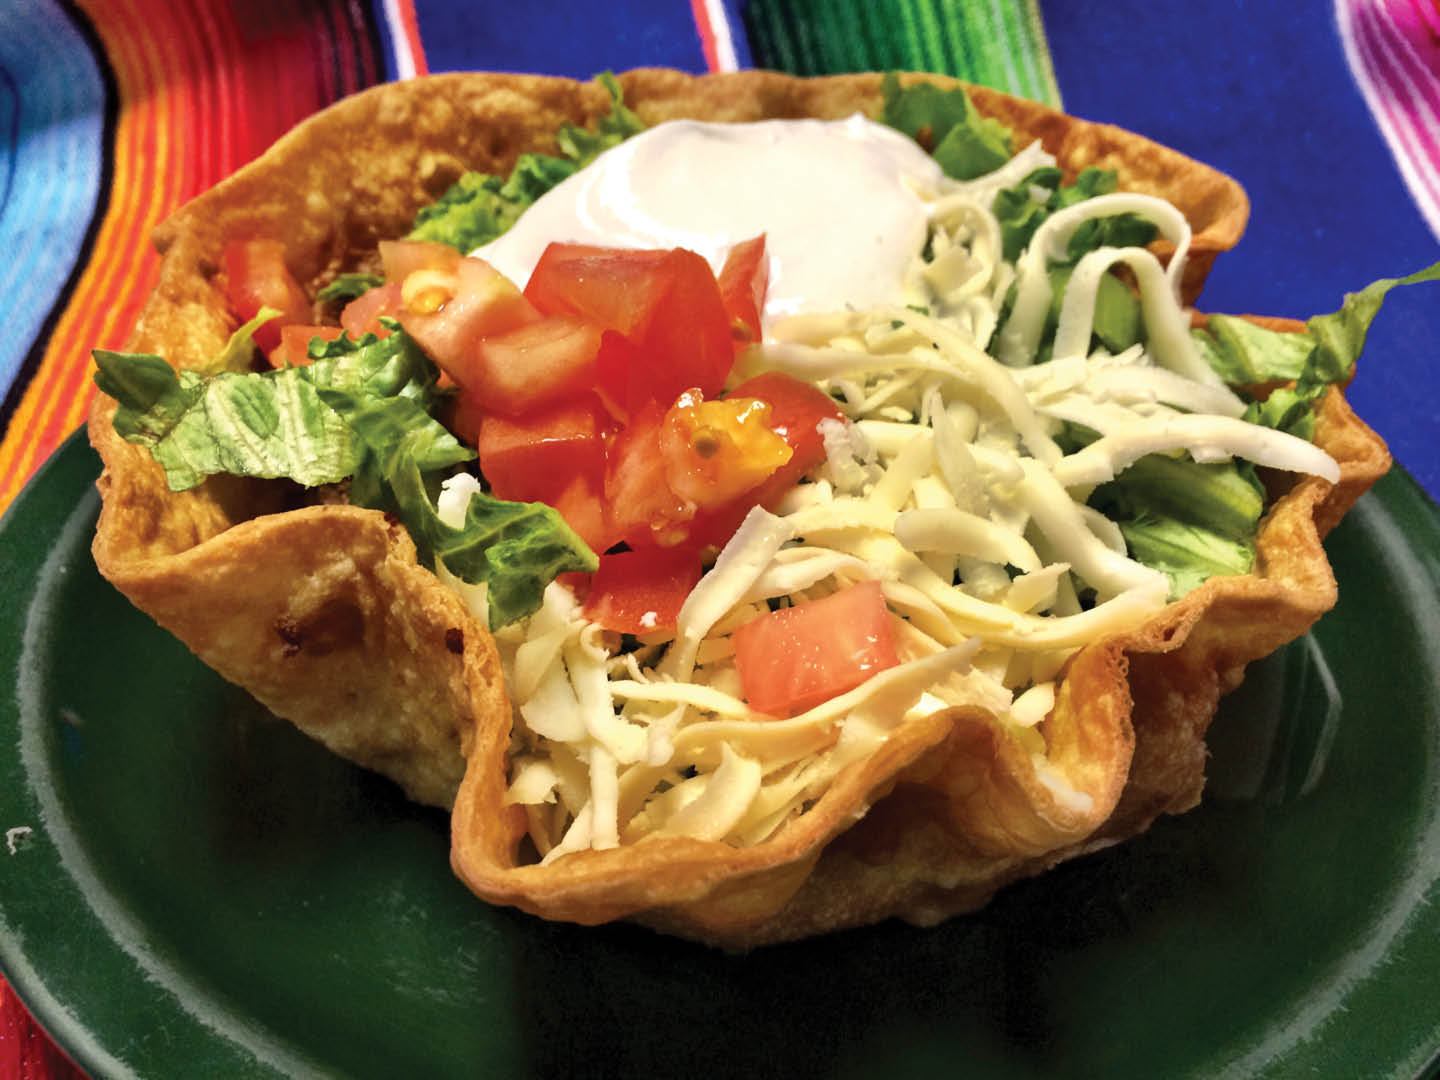 mexican food, taco salad, el paso mexican grill located in dumfries, virginia